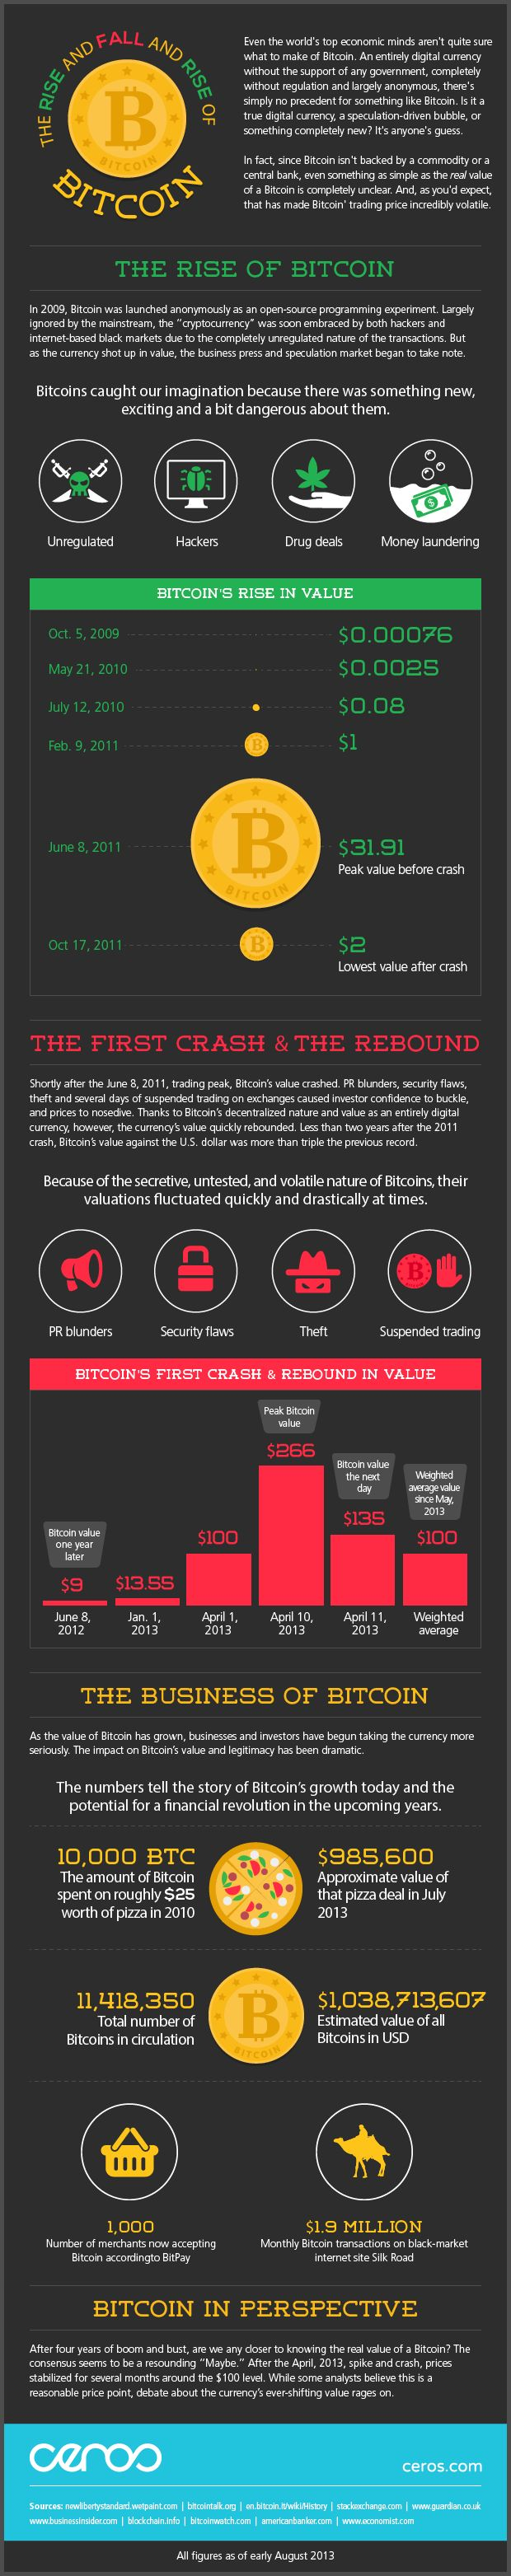 Heard of Bitcoin? Confused by Bitcoin? Scared of Bitcoin? Check out this #Bitcoin #Infographic